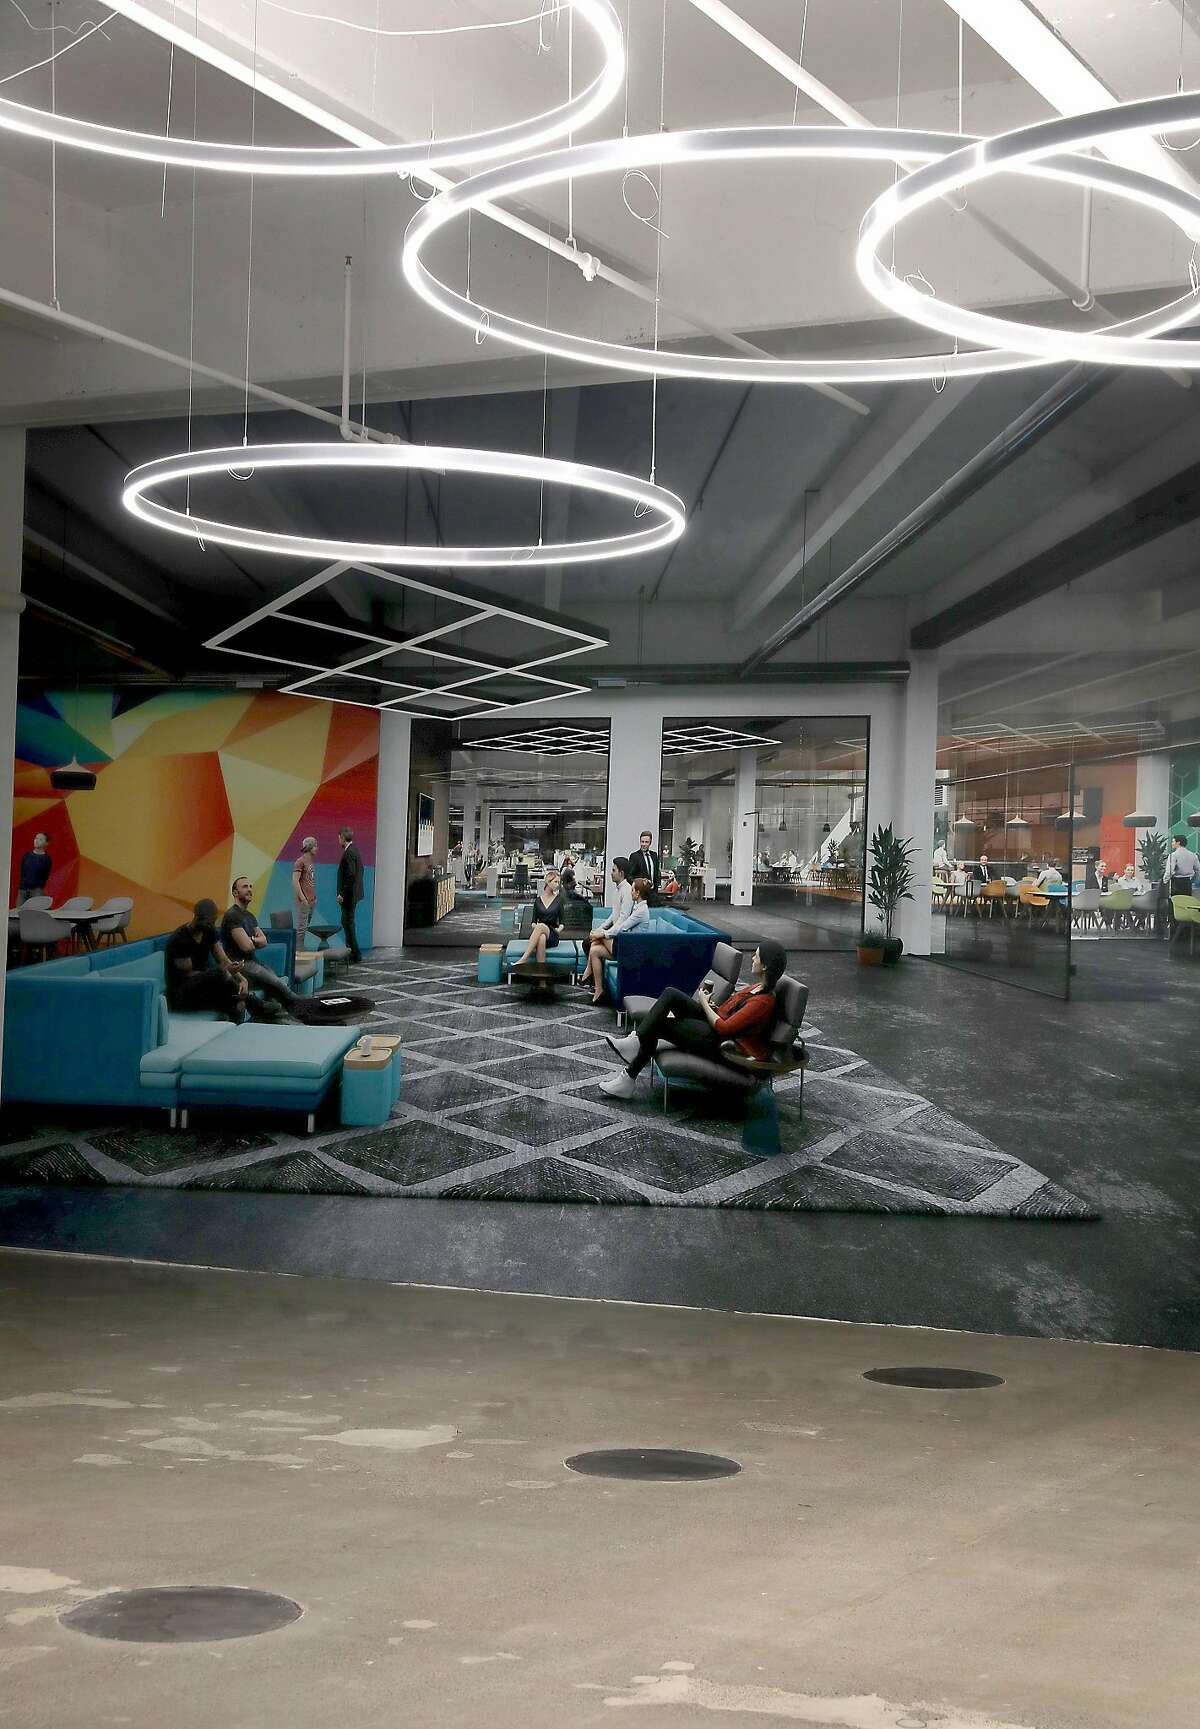 Rendition seen of what the former underground bank vault at 1455 Market St. might look like as it is being converted into office space on Tuesday, Feb. 26, 2019, in San Francisco, Calif.